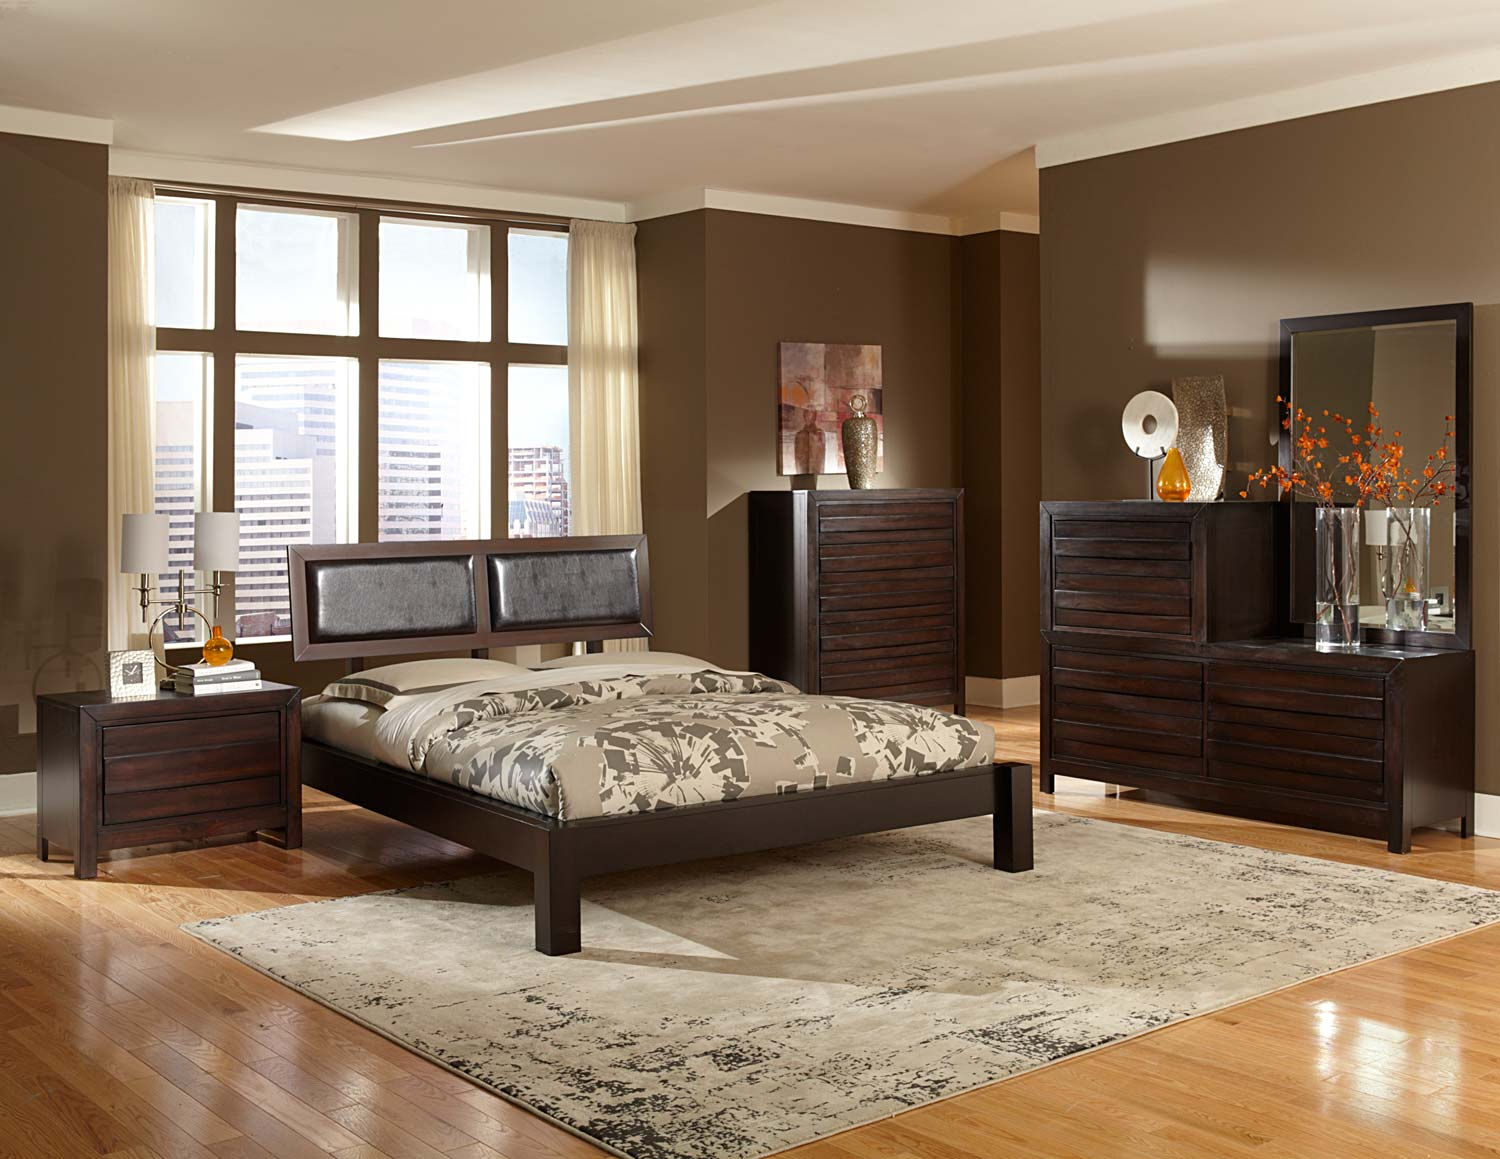 Homelegance Danika Platform Bedroom Set Dark Espresso B2205 Bed